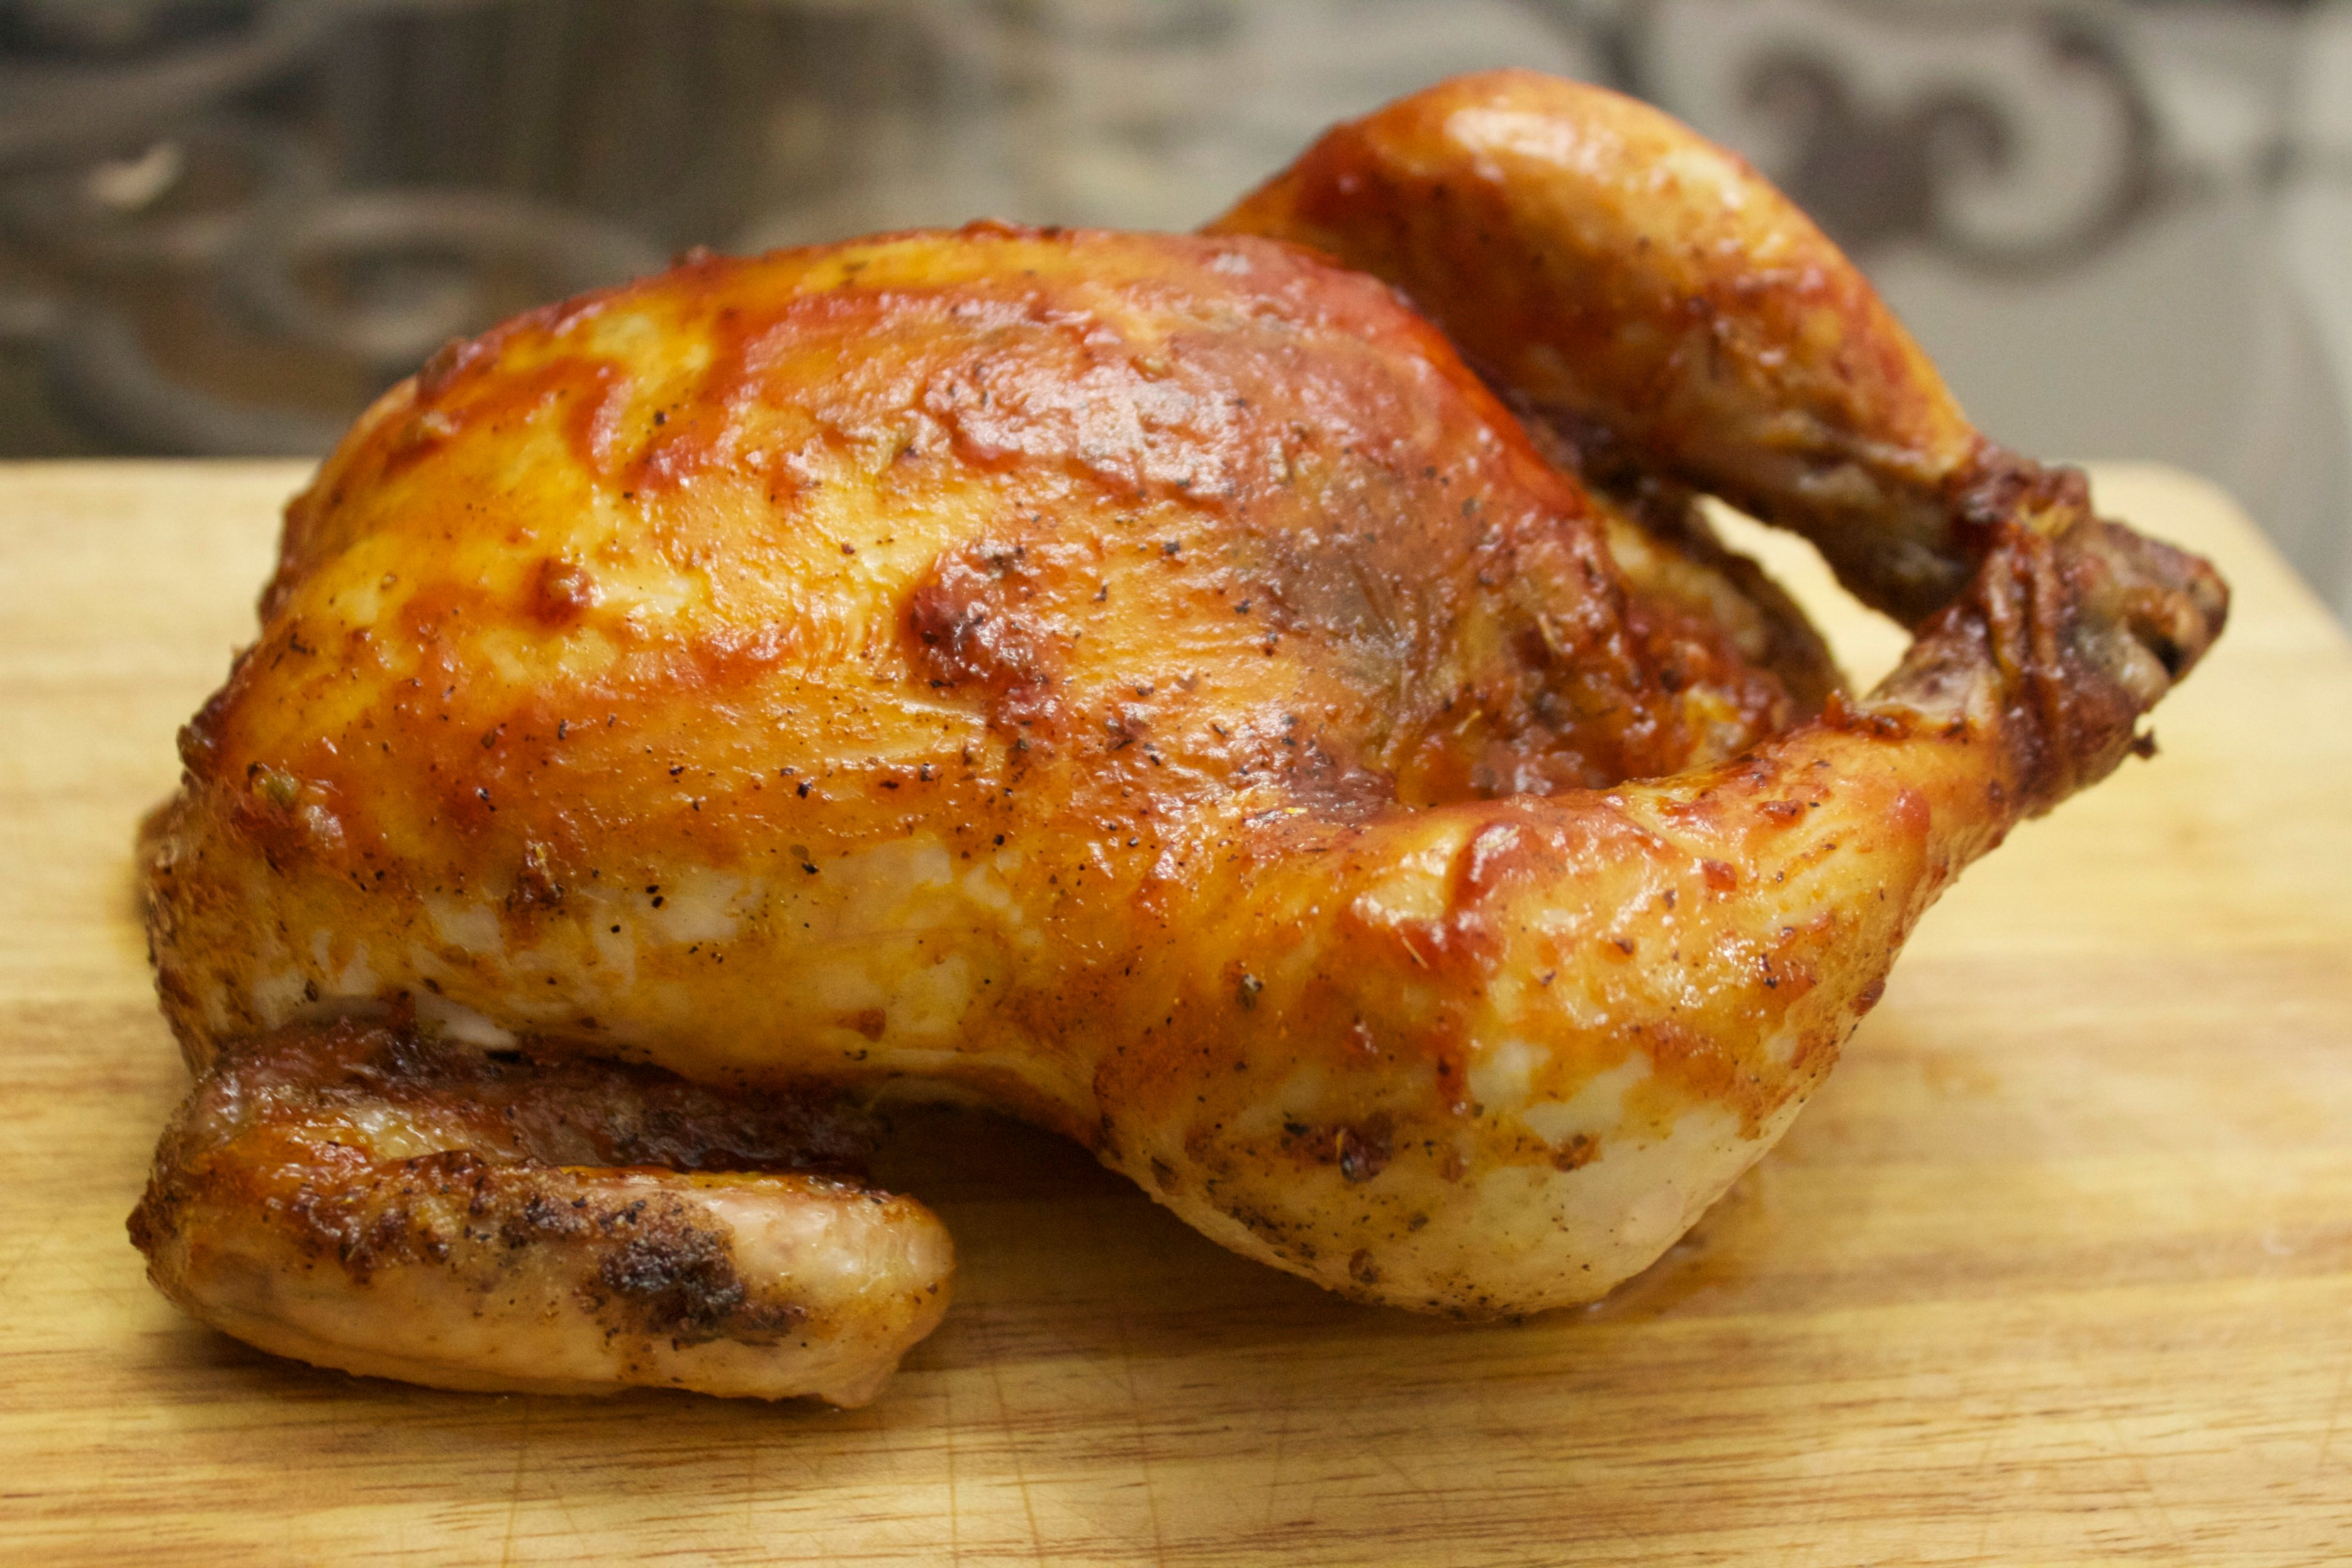 Roasted chicken brushed with a homemade barbecue sauce